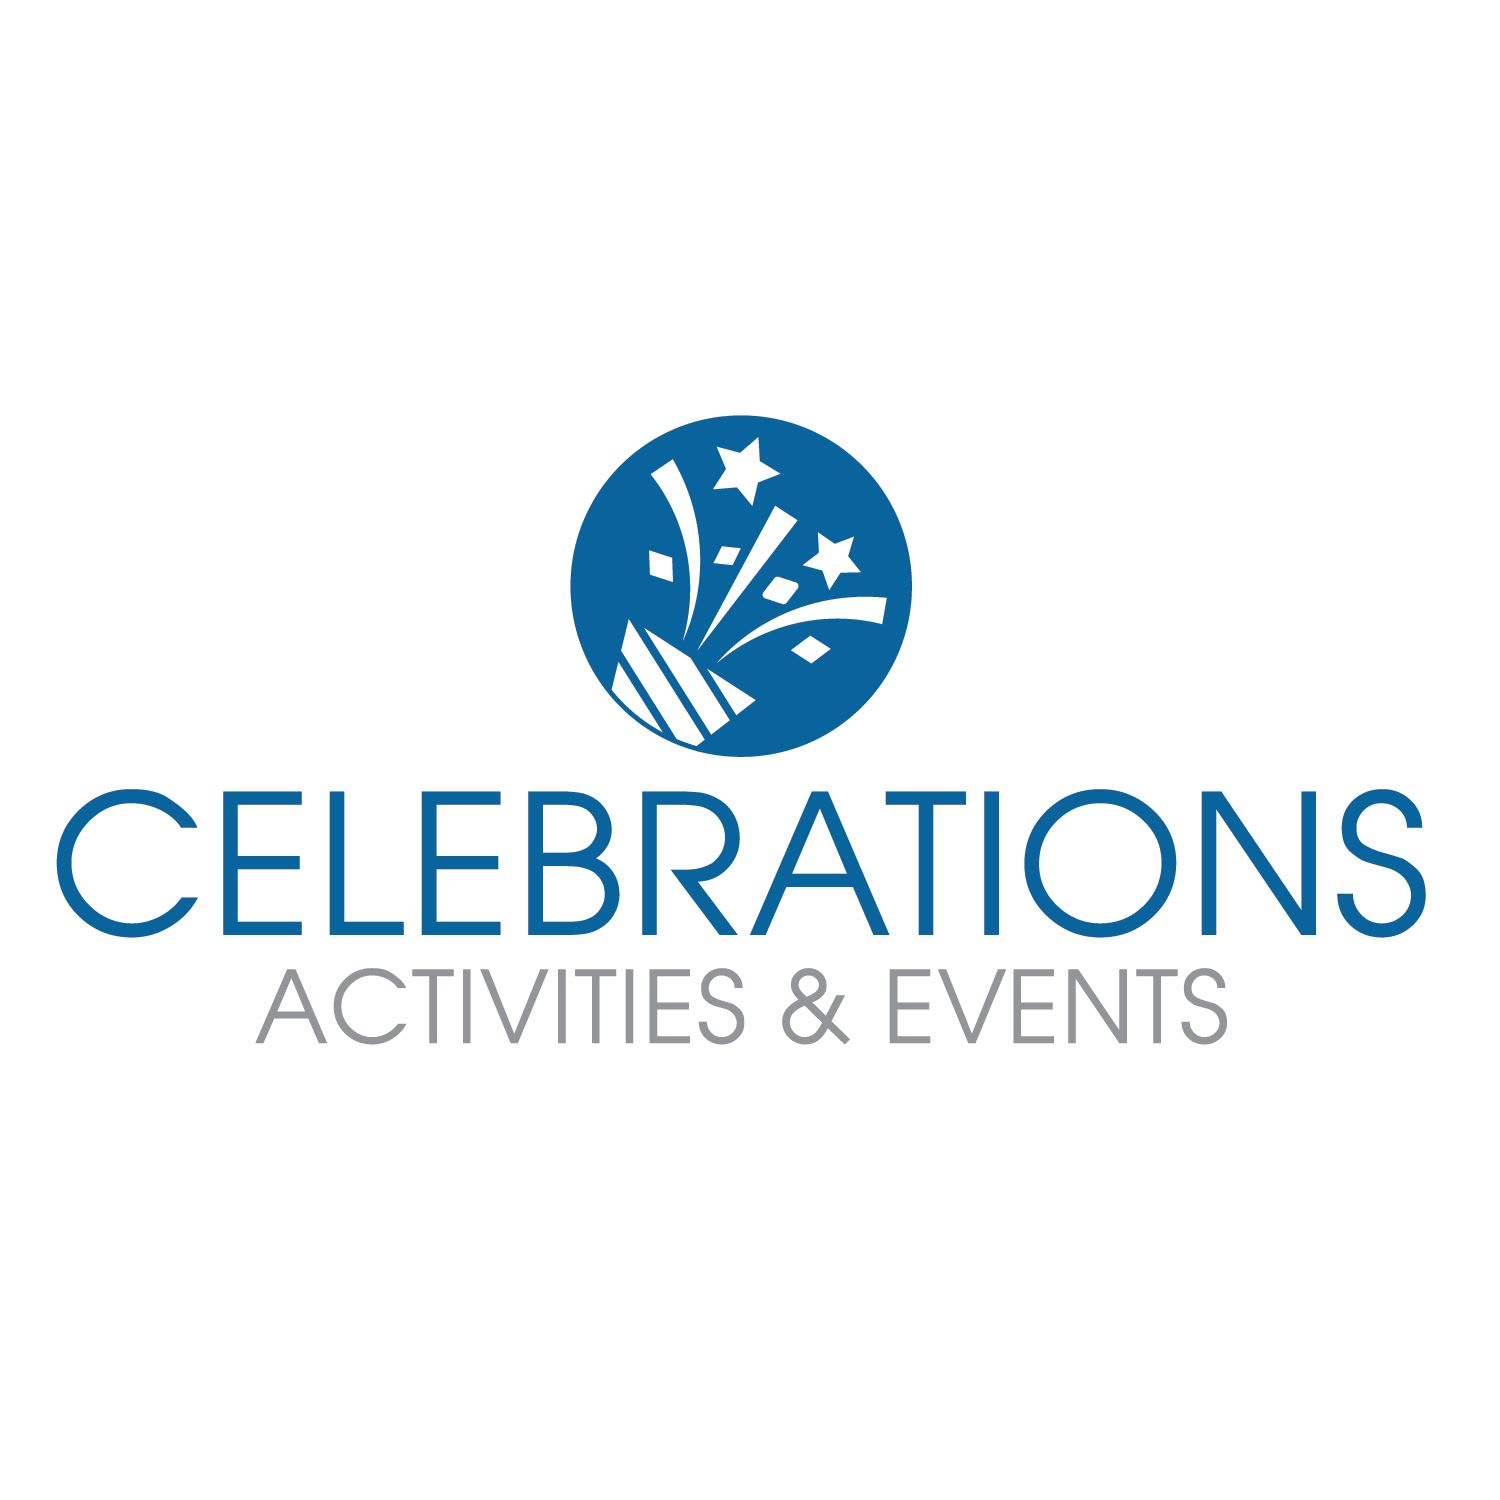 Celebrations activities and events for seniors in Covington, LA.